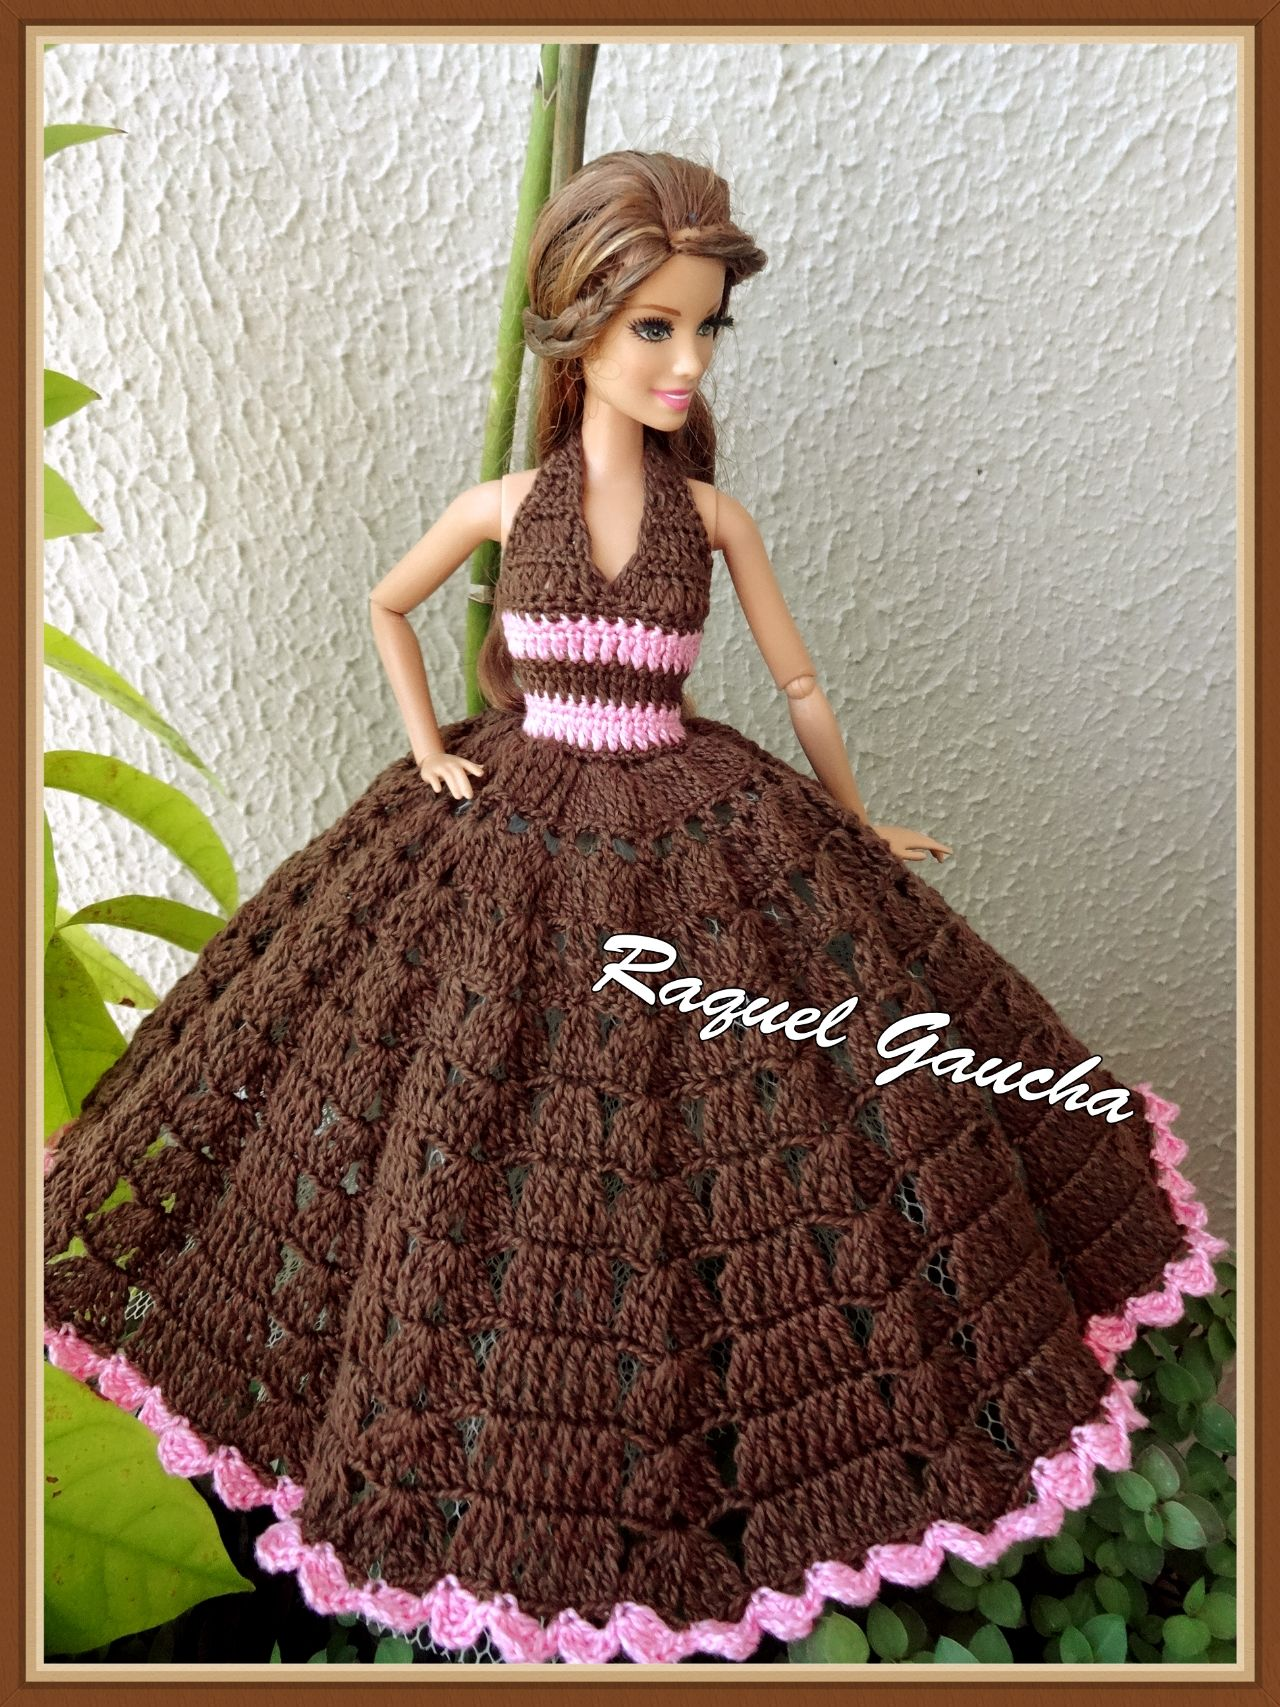 rachelcrochet.wordpress.com #Vestido #Barbie #Doll #Muñeca #Dress #Crochet #Cléa5 #Raquelgaucha